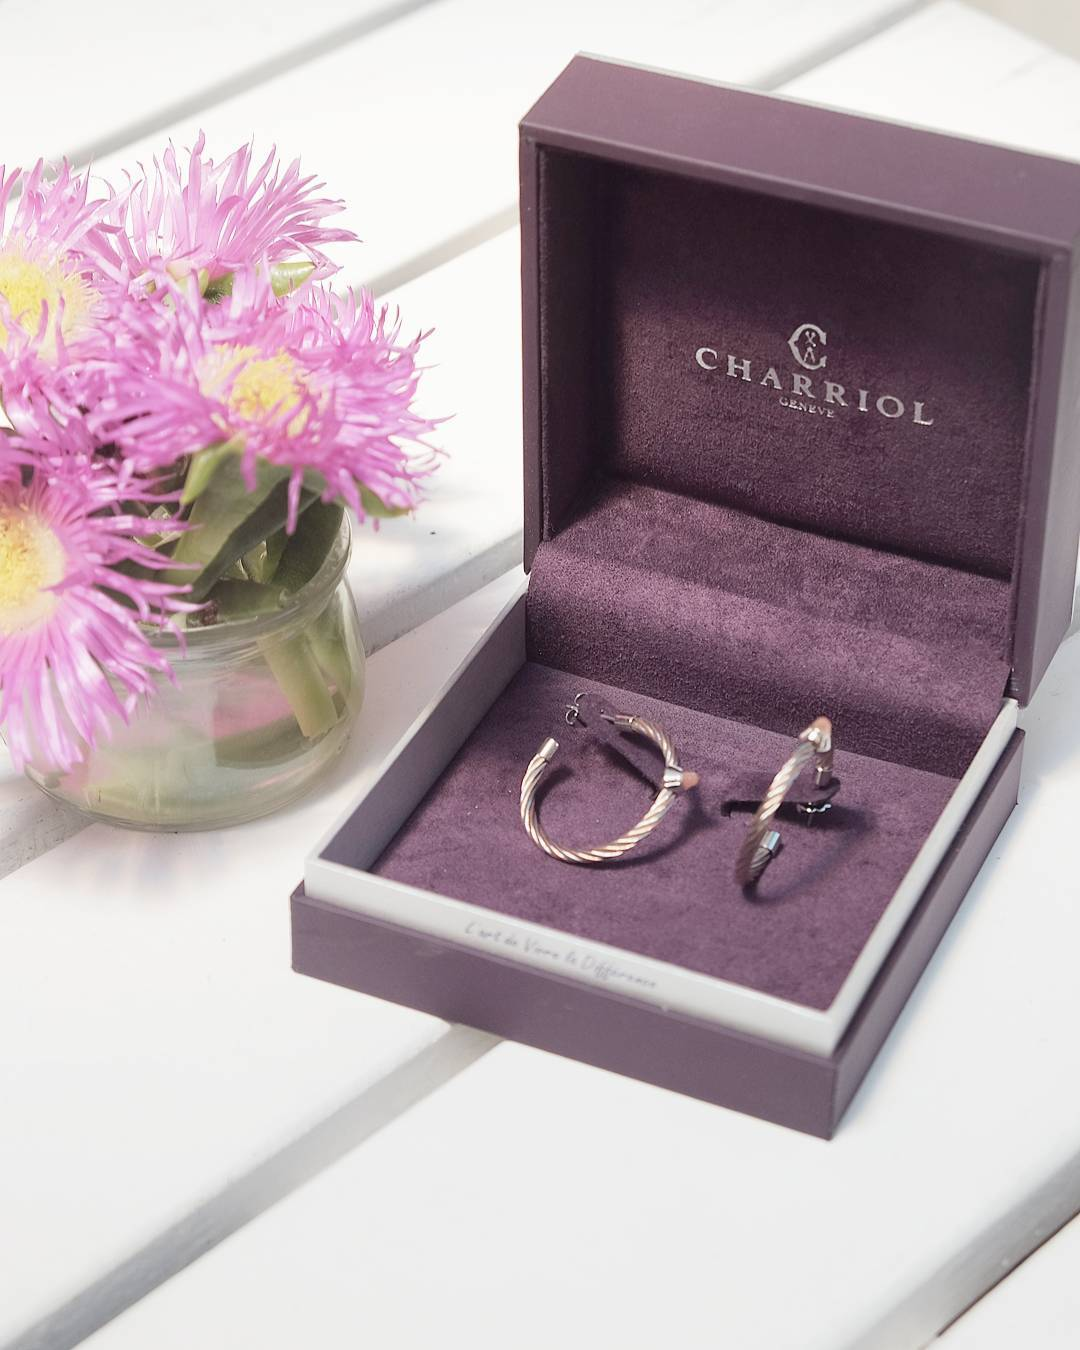 Coucou! Win this fabulous rose gold coated earrings Charriol withhellip